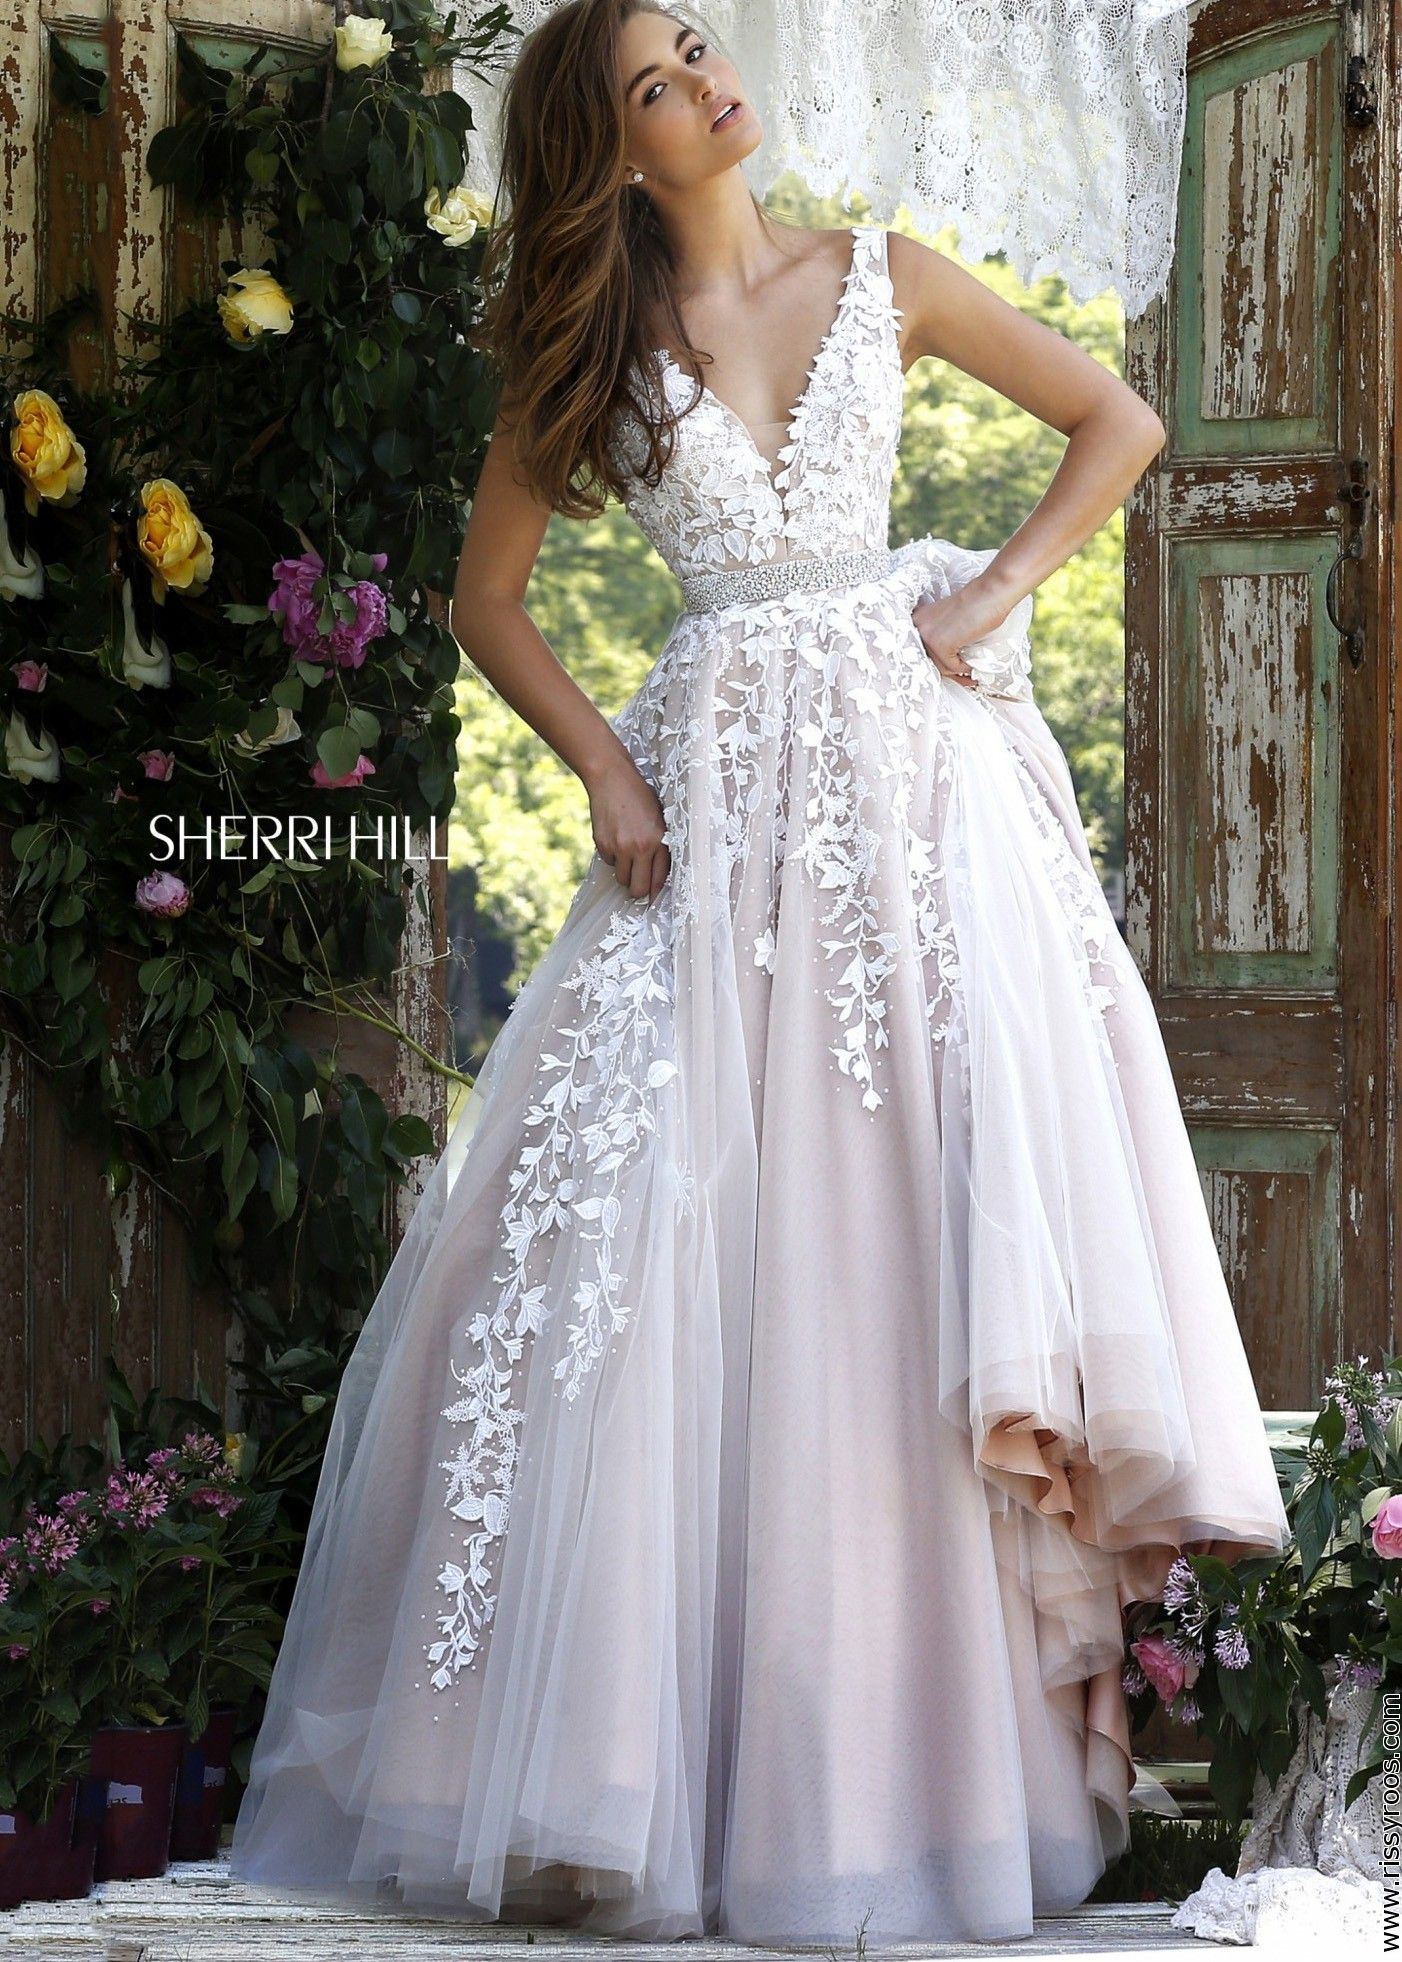 Sherri hill fancy lace embroidered ball gown dresses to die